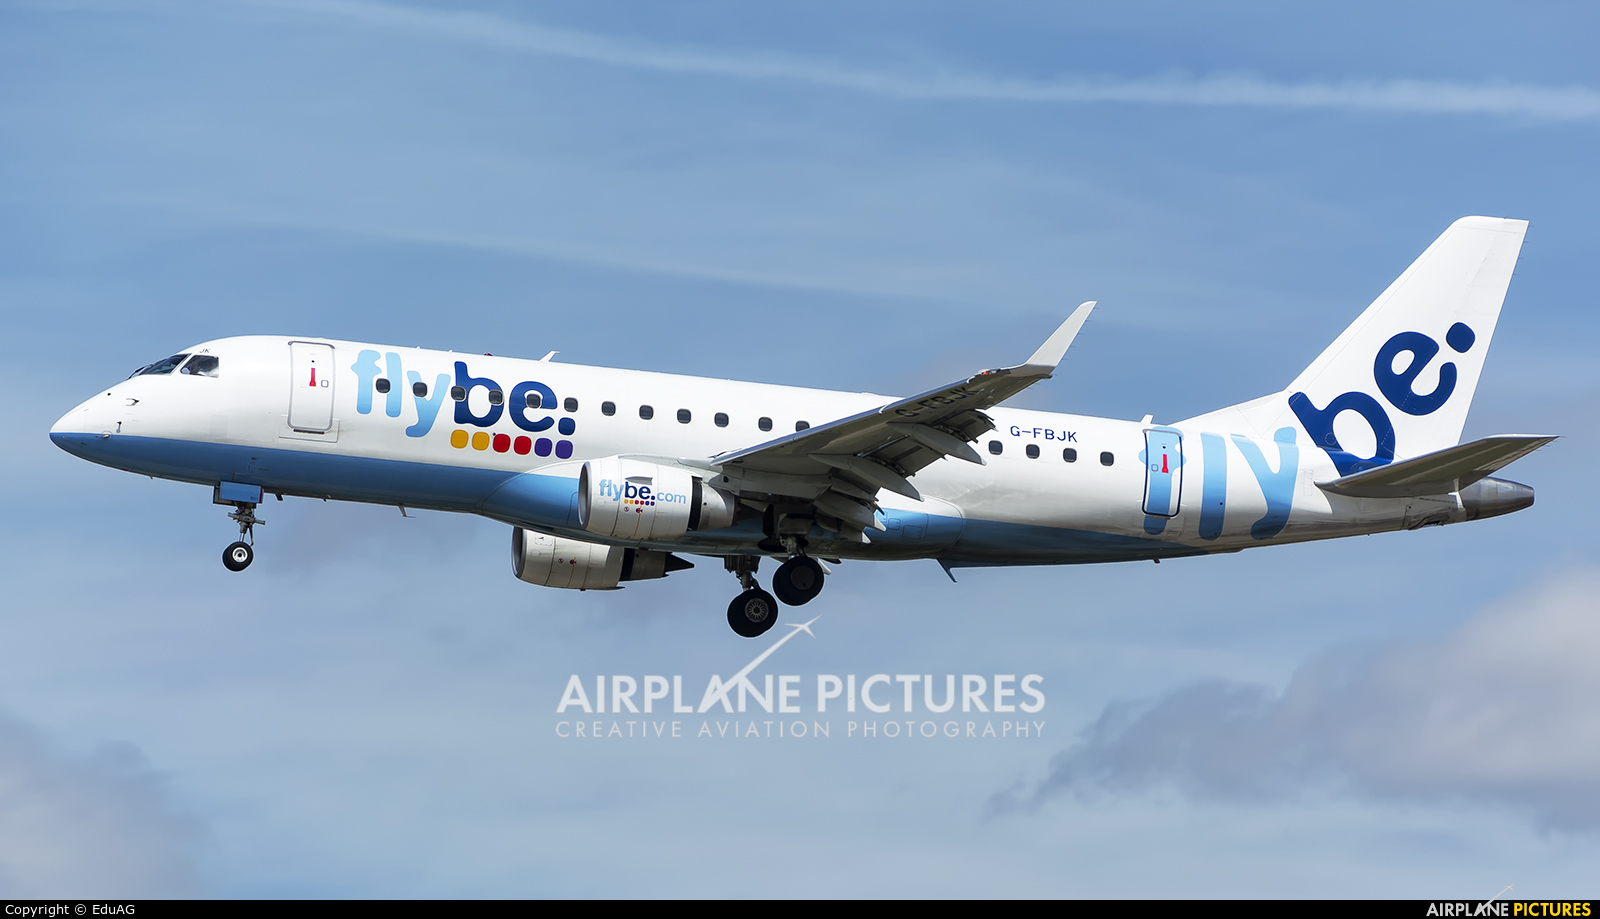 Flybe G-FBJK aircraft at Madrid - Barajas